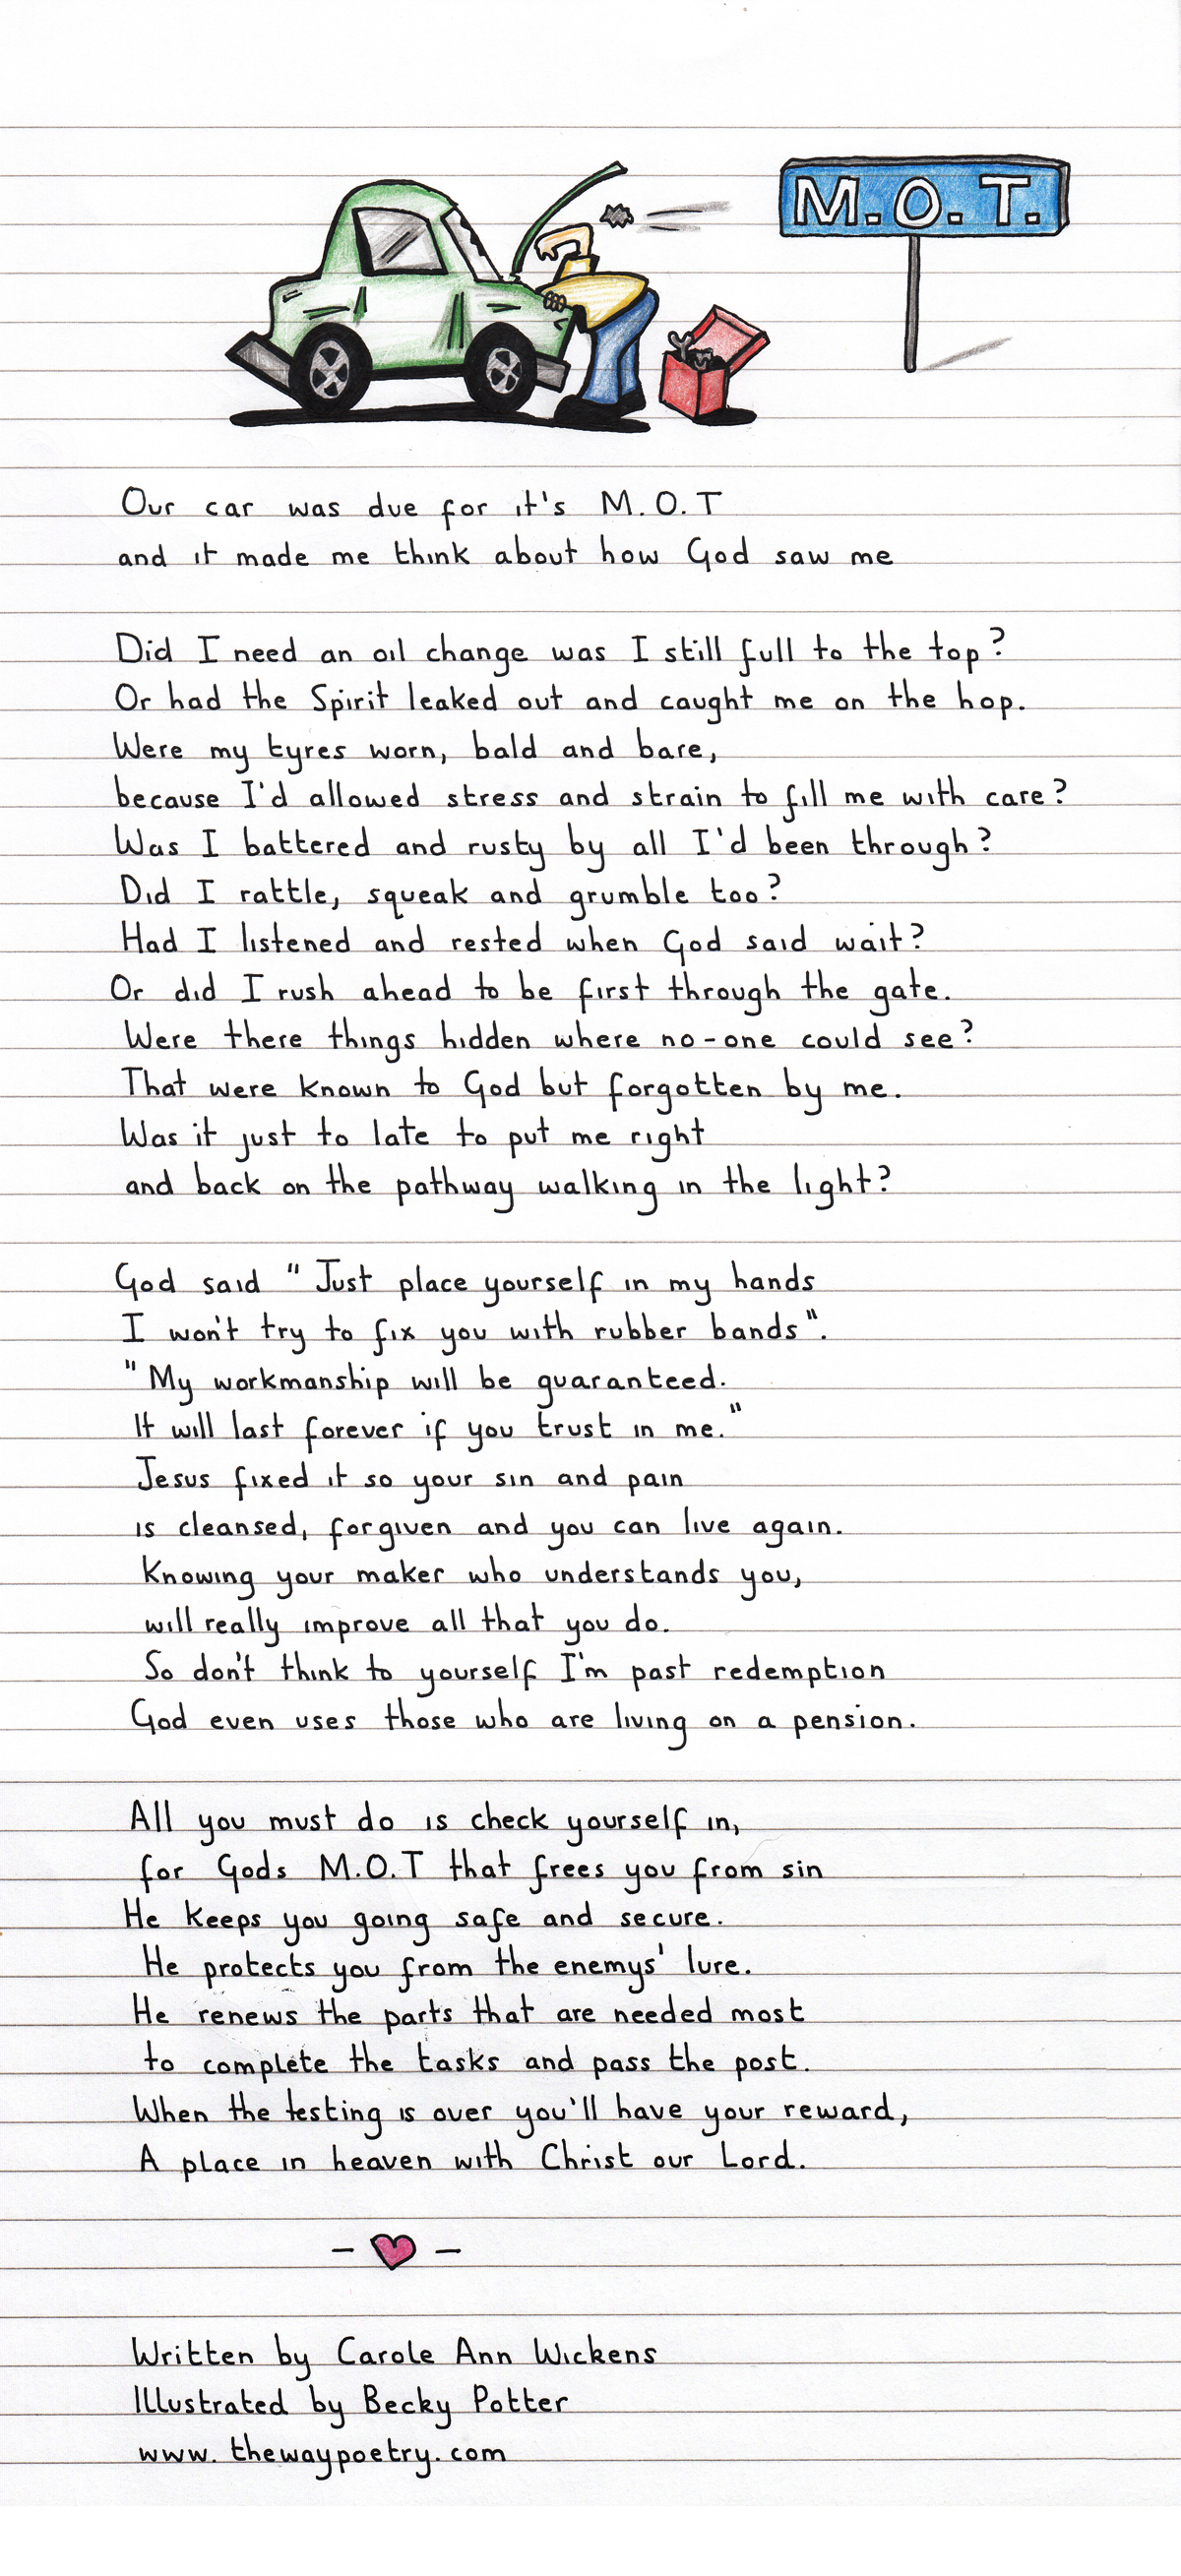 M.O.T. by Carole Ann Wickens